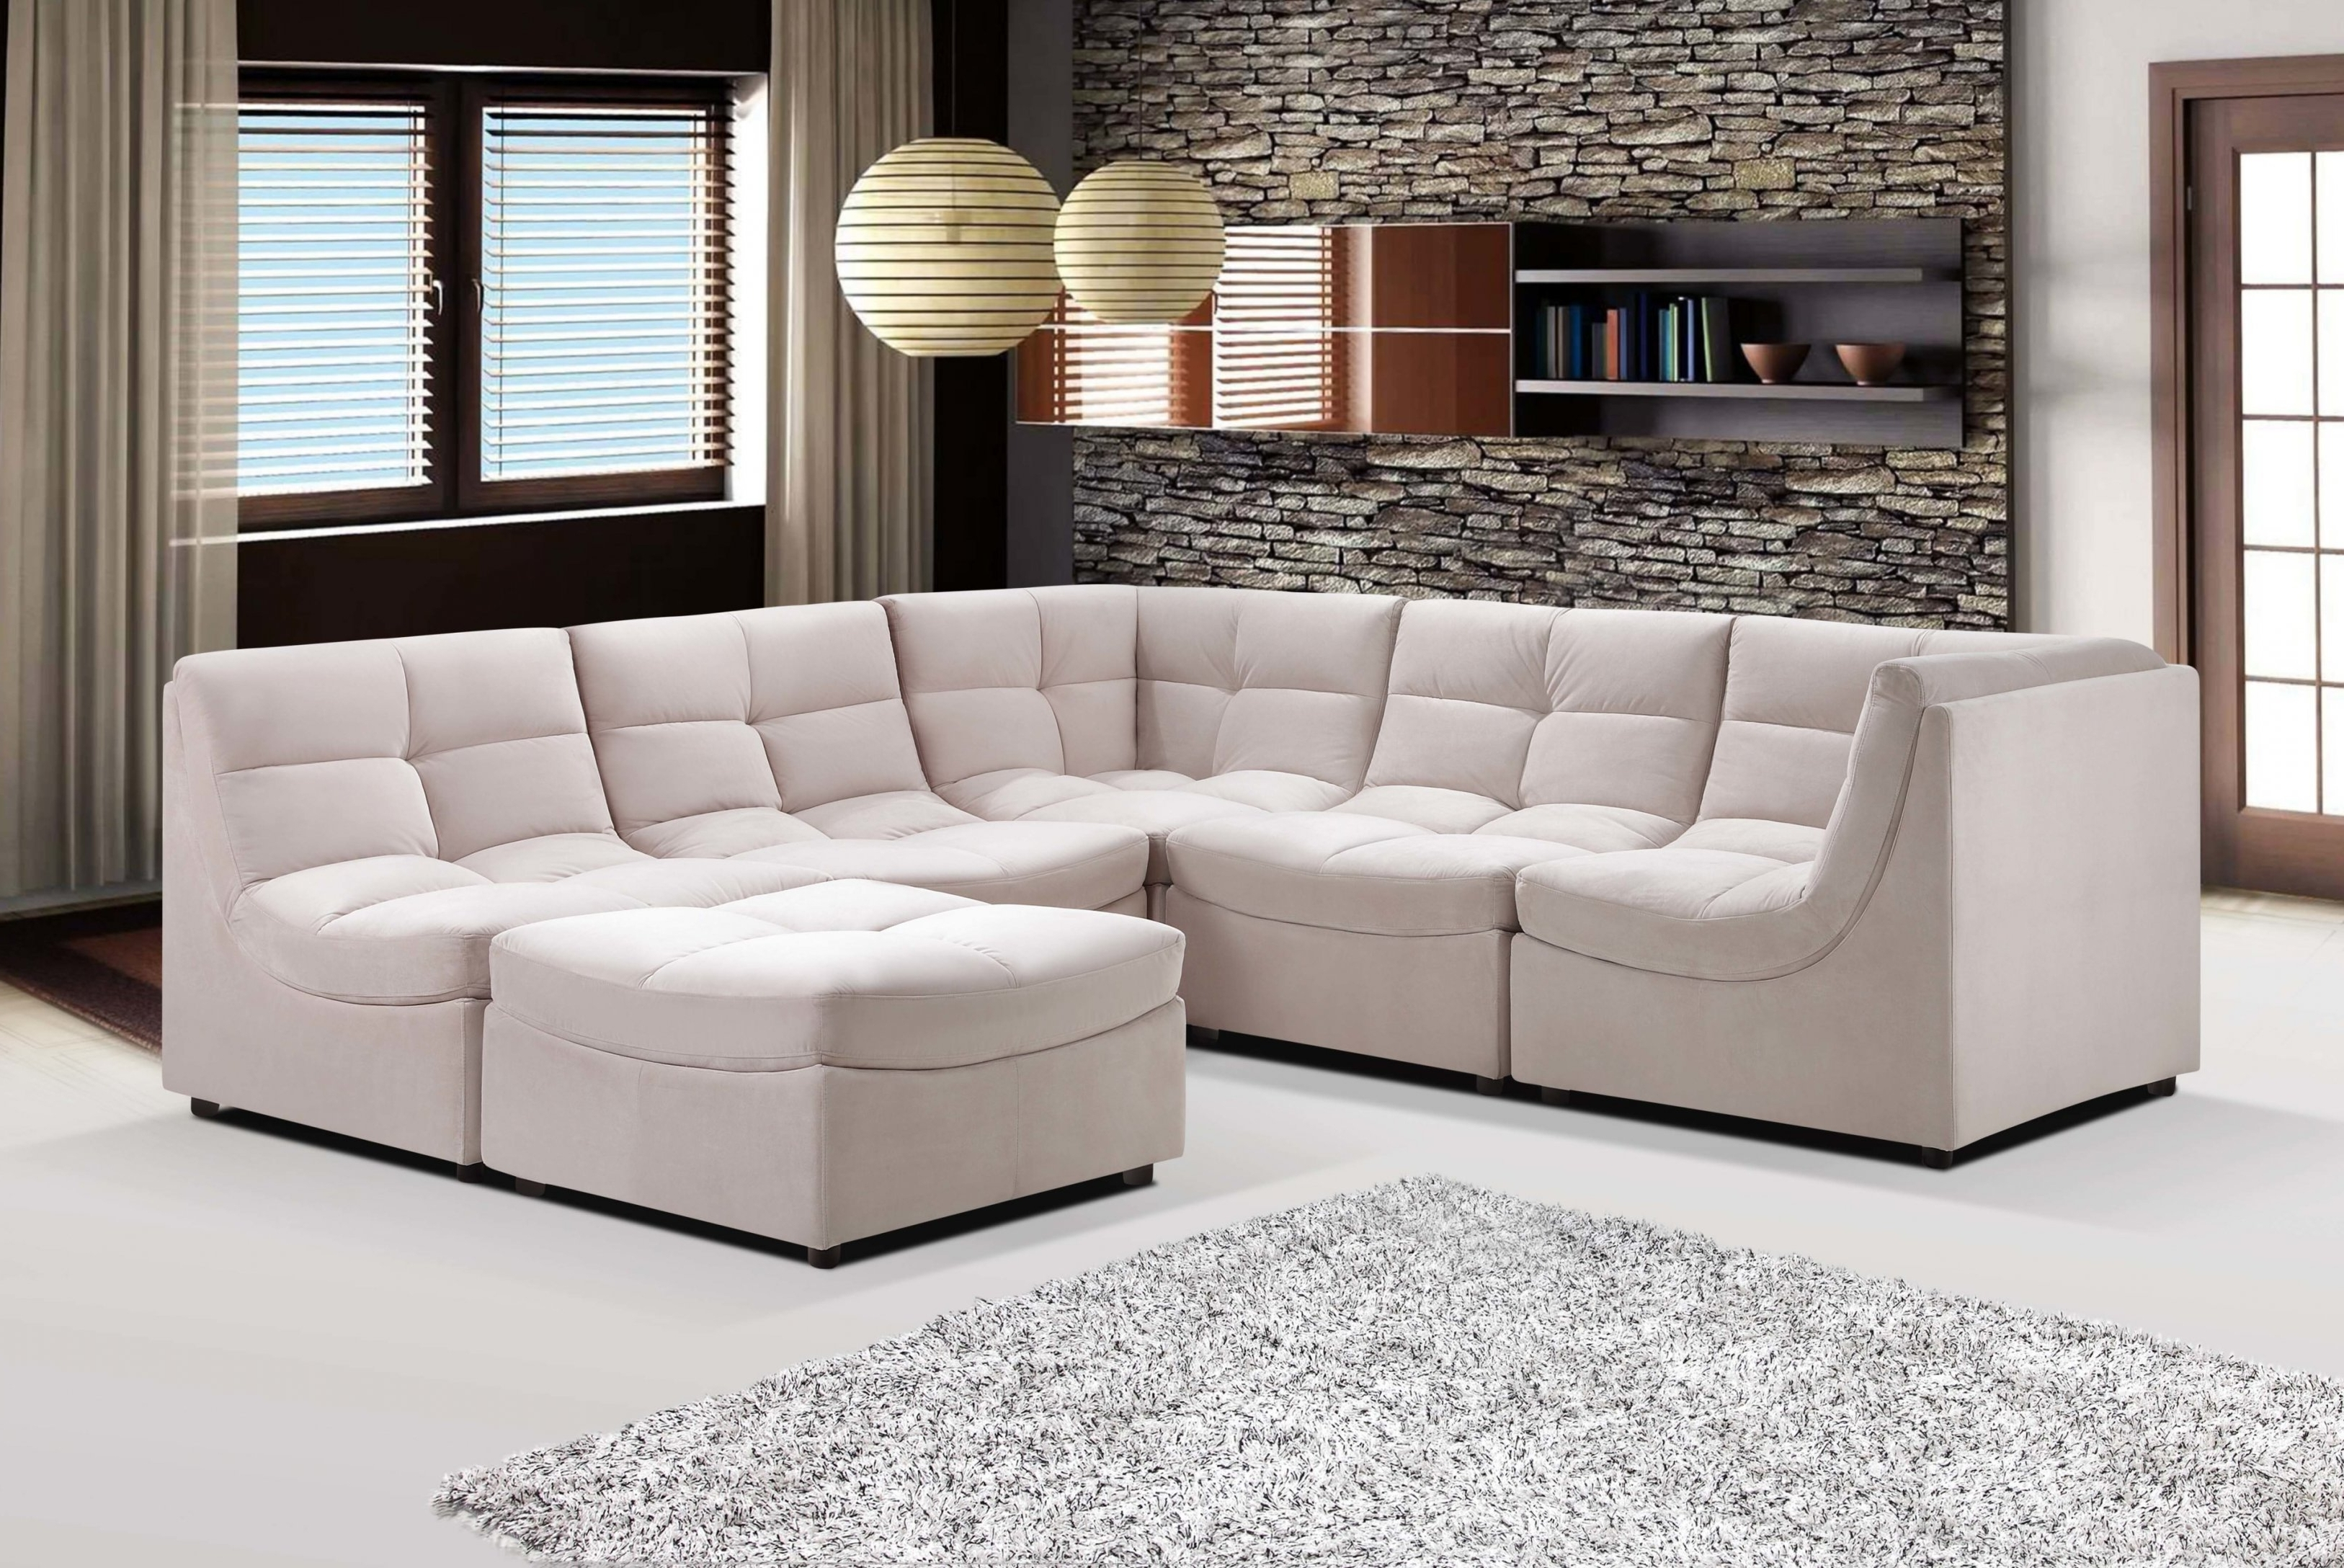 Modular Sectional Sofas For Most Popular Small Modular Sectional Sofa 21 For Your Sofa Sectionals For Cloud (View 4 of 15)